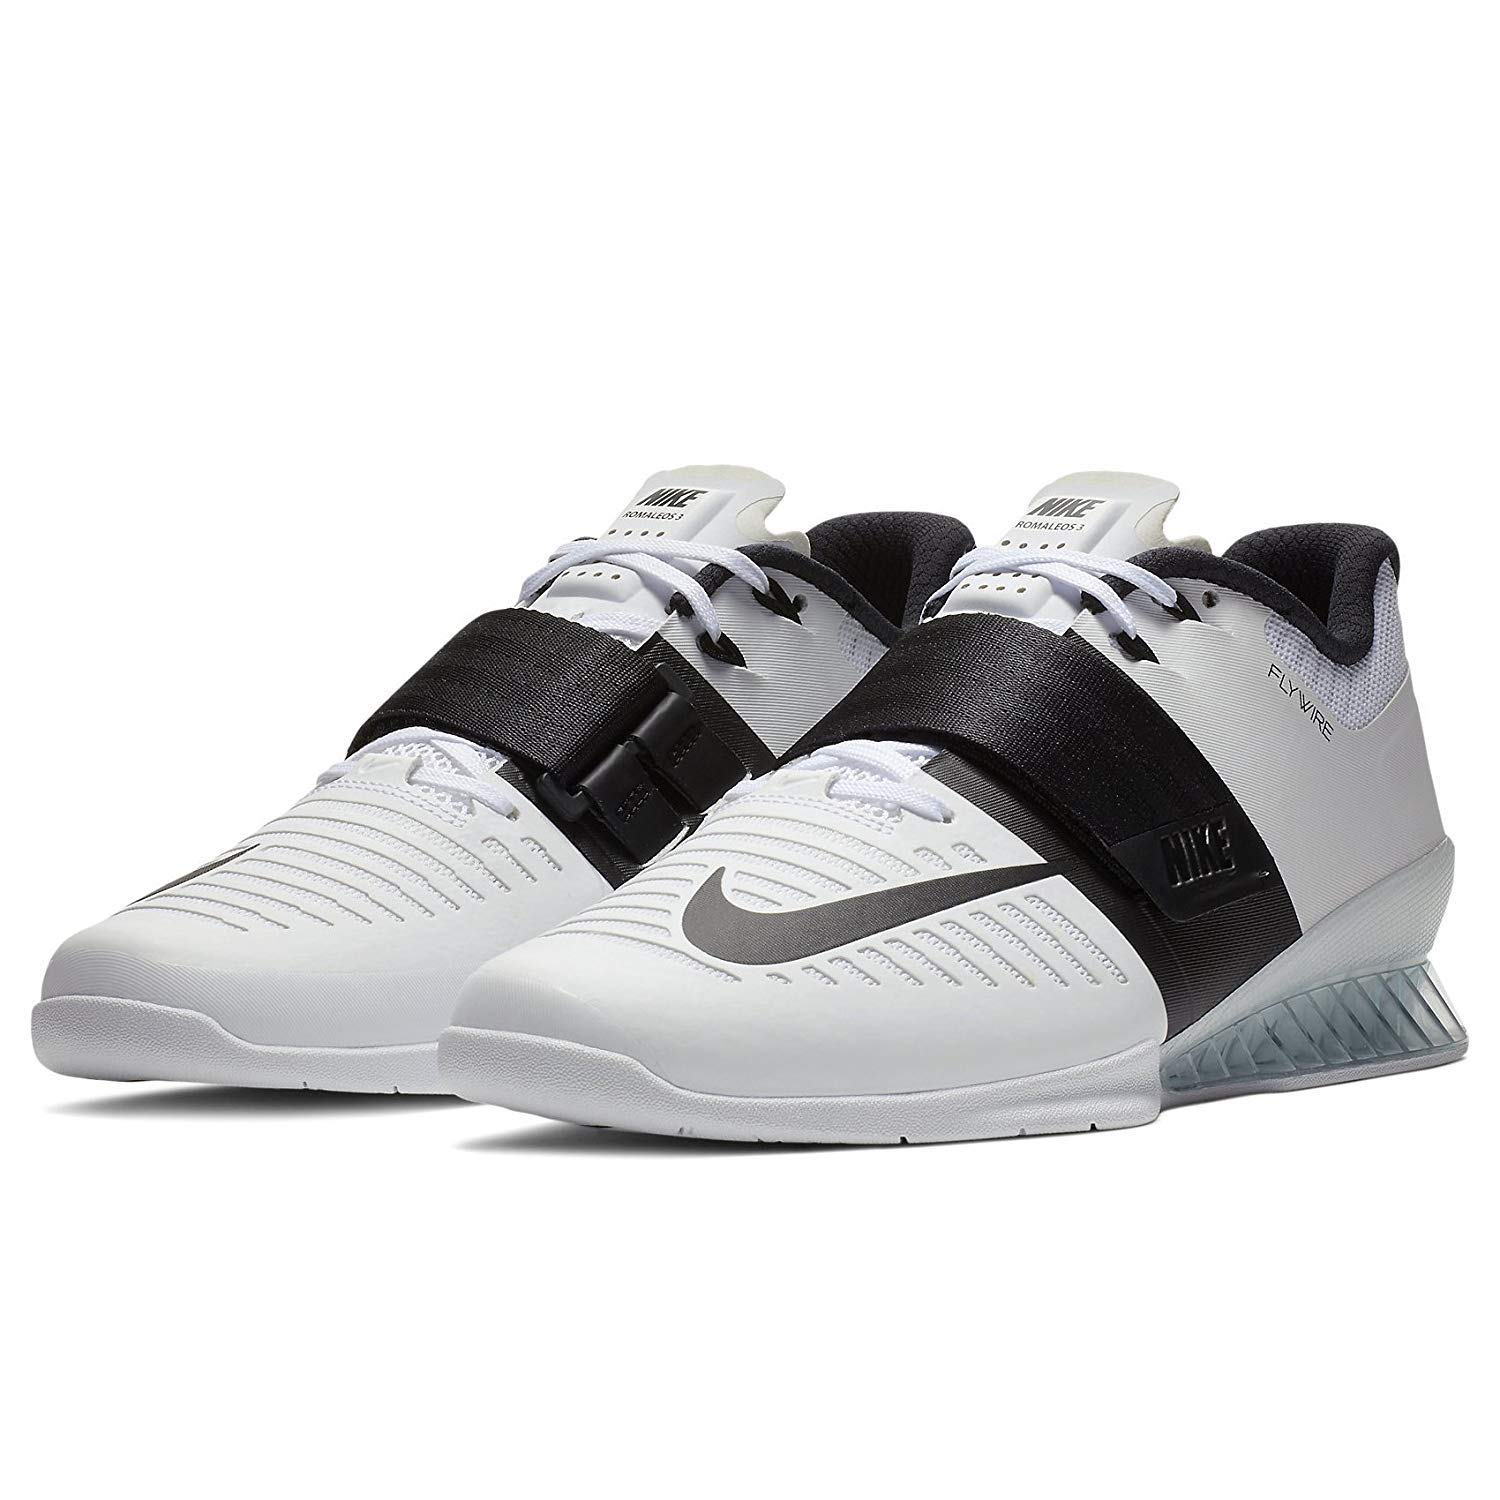 half off 81cbf 367f5 Amazon.com  Nike Mens Romaleos 3 Weightlifting Shoes  Fitness   Cross-Training